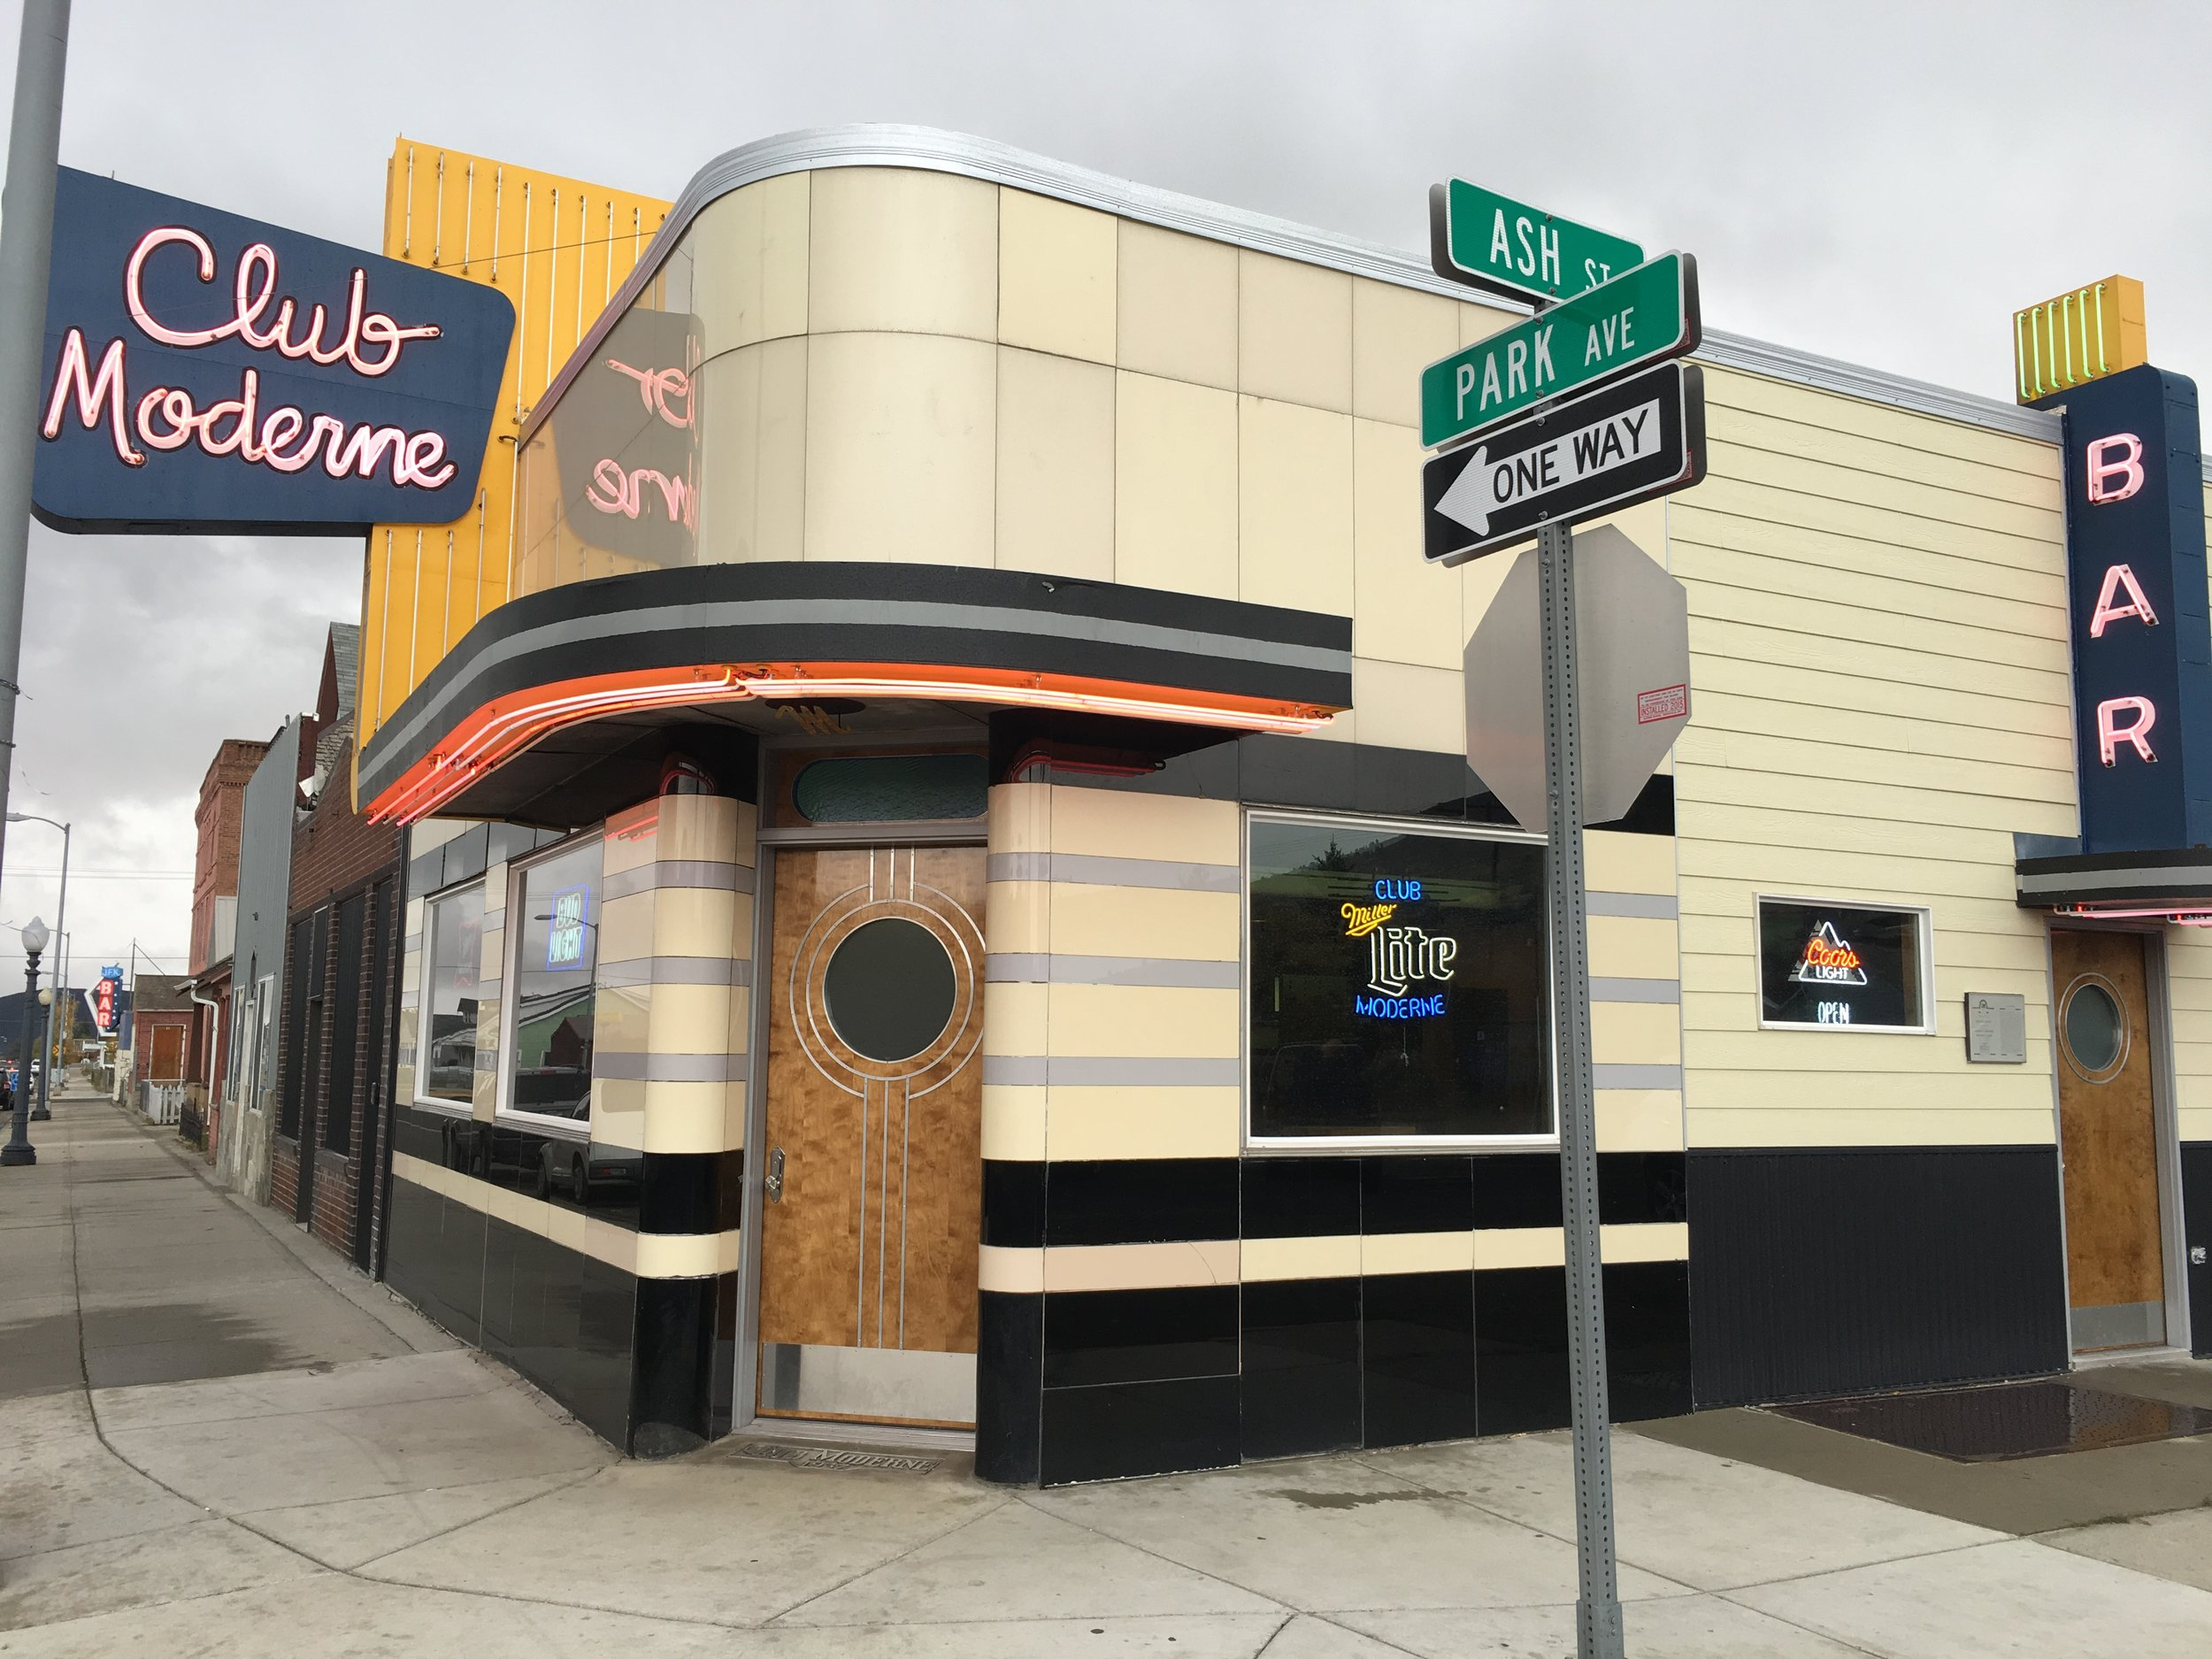 Luck and love helped restore the Club Moderne bar after a devastating fire in fall 2016.